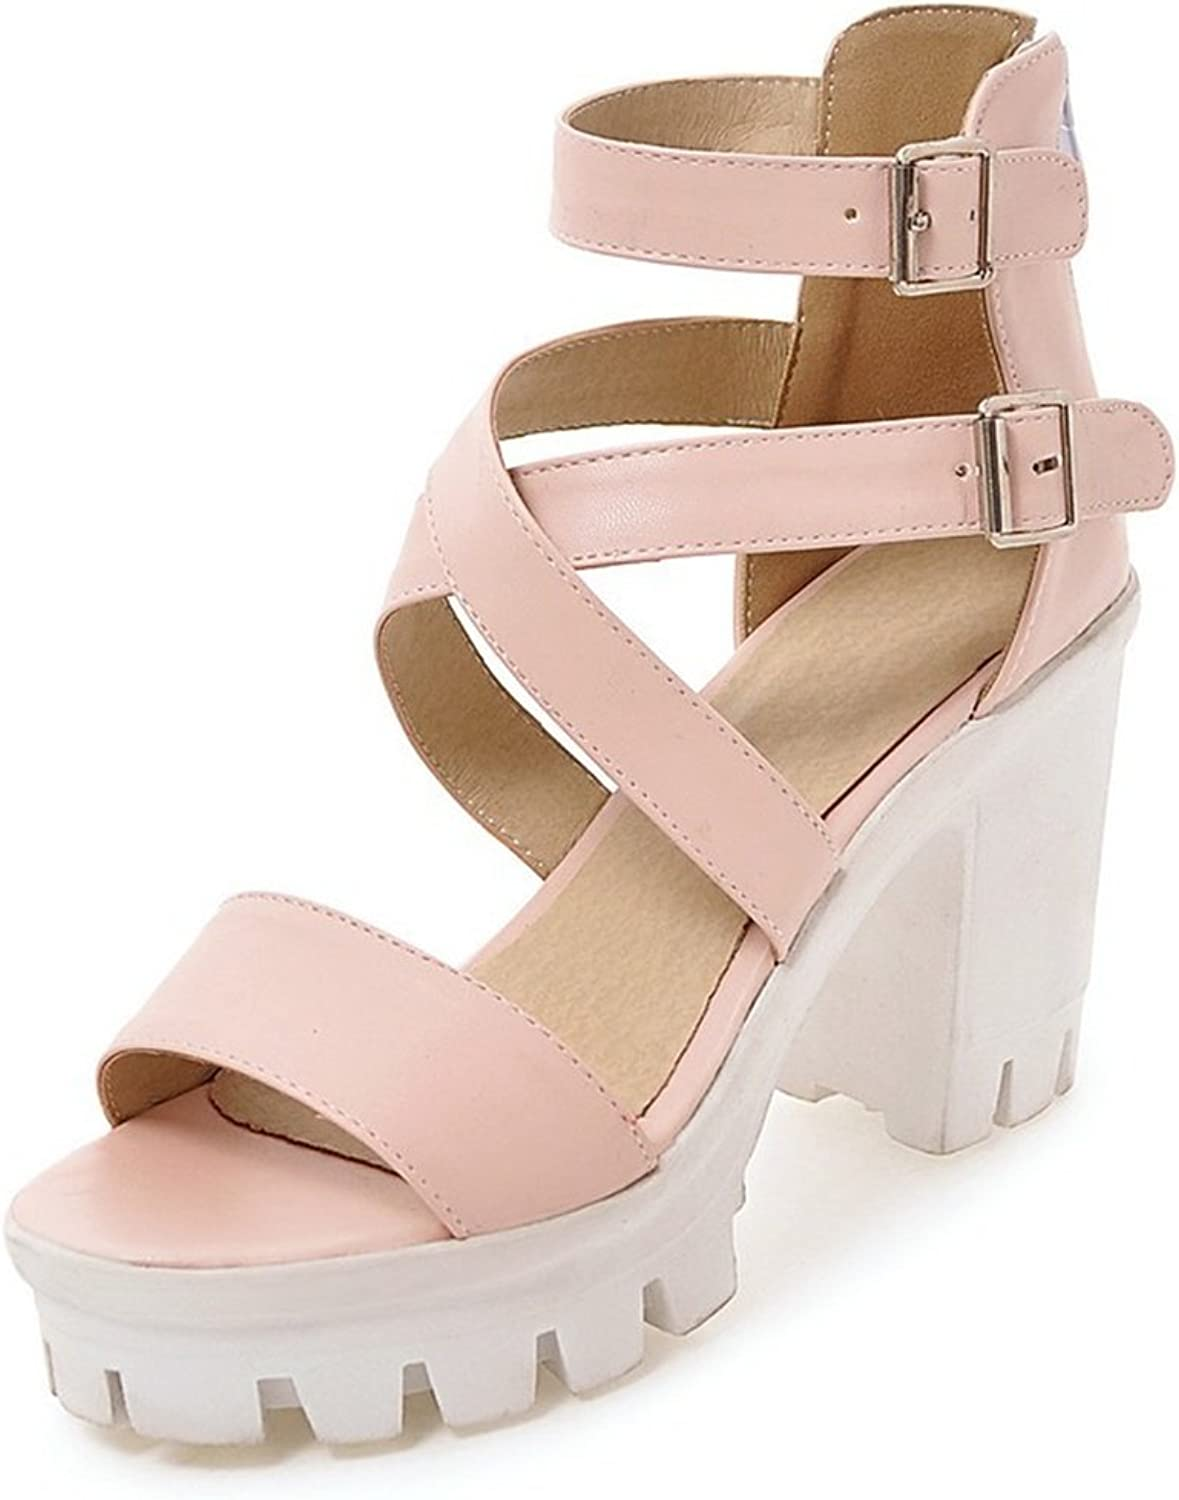 DecoStain Women's Classic Open Toe Buckle Ankle Strap Platform High Chunky Heel Working Party Sandals